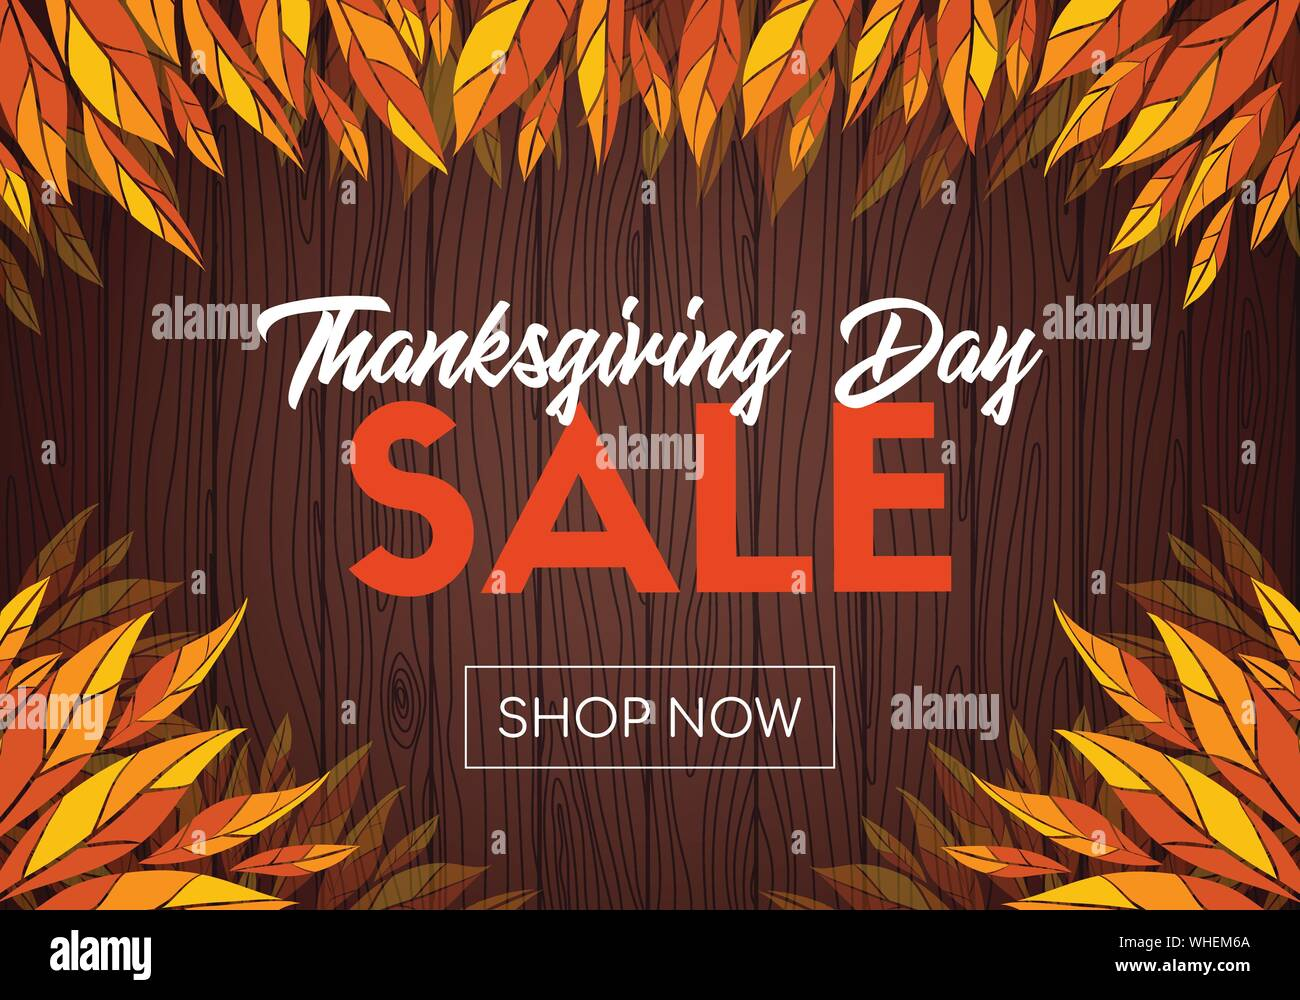 Thanksgiving Promotion High Resolution Stock Photography And Images Alamy